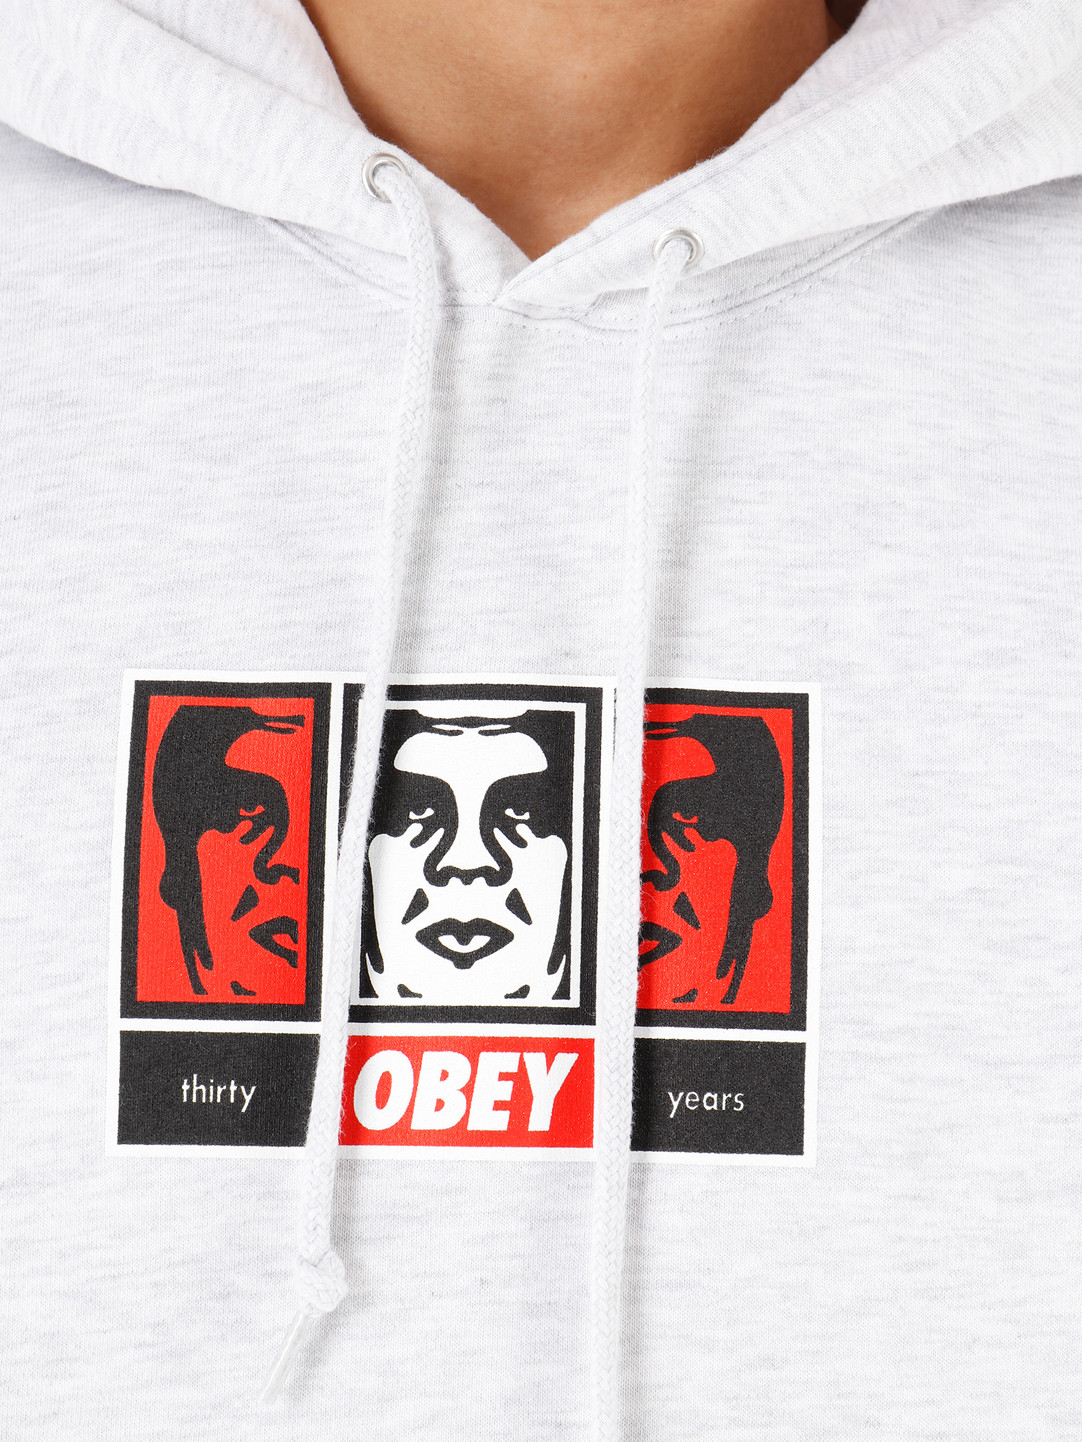 obey-obey-3-faces-30-years-heather-ash-112842252-h (1).jpg